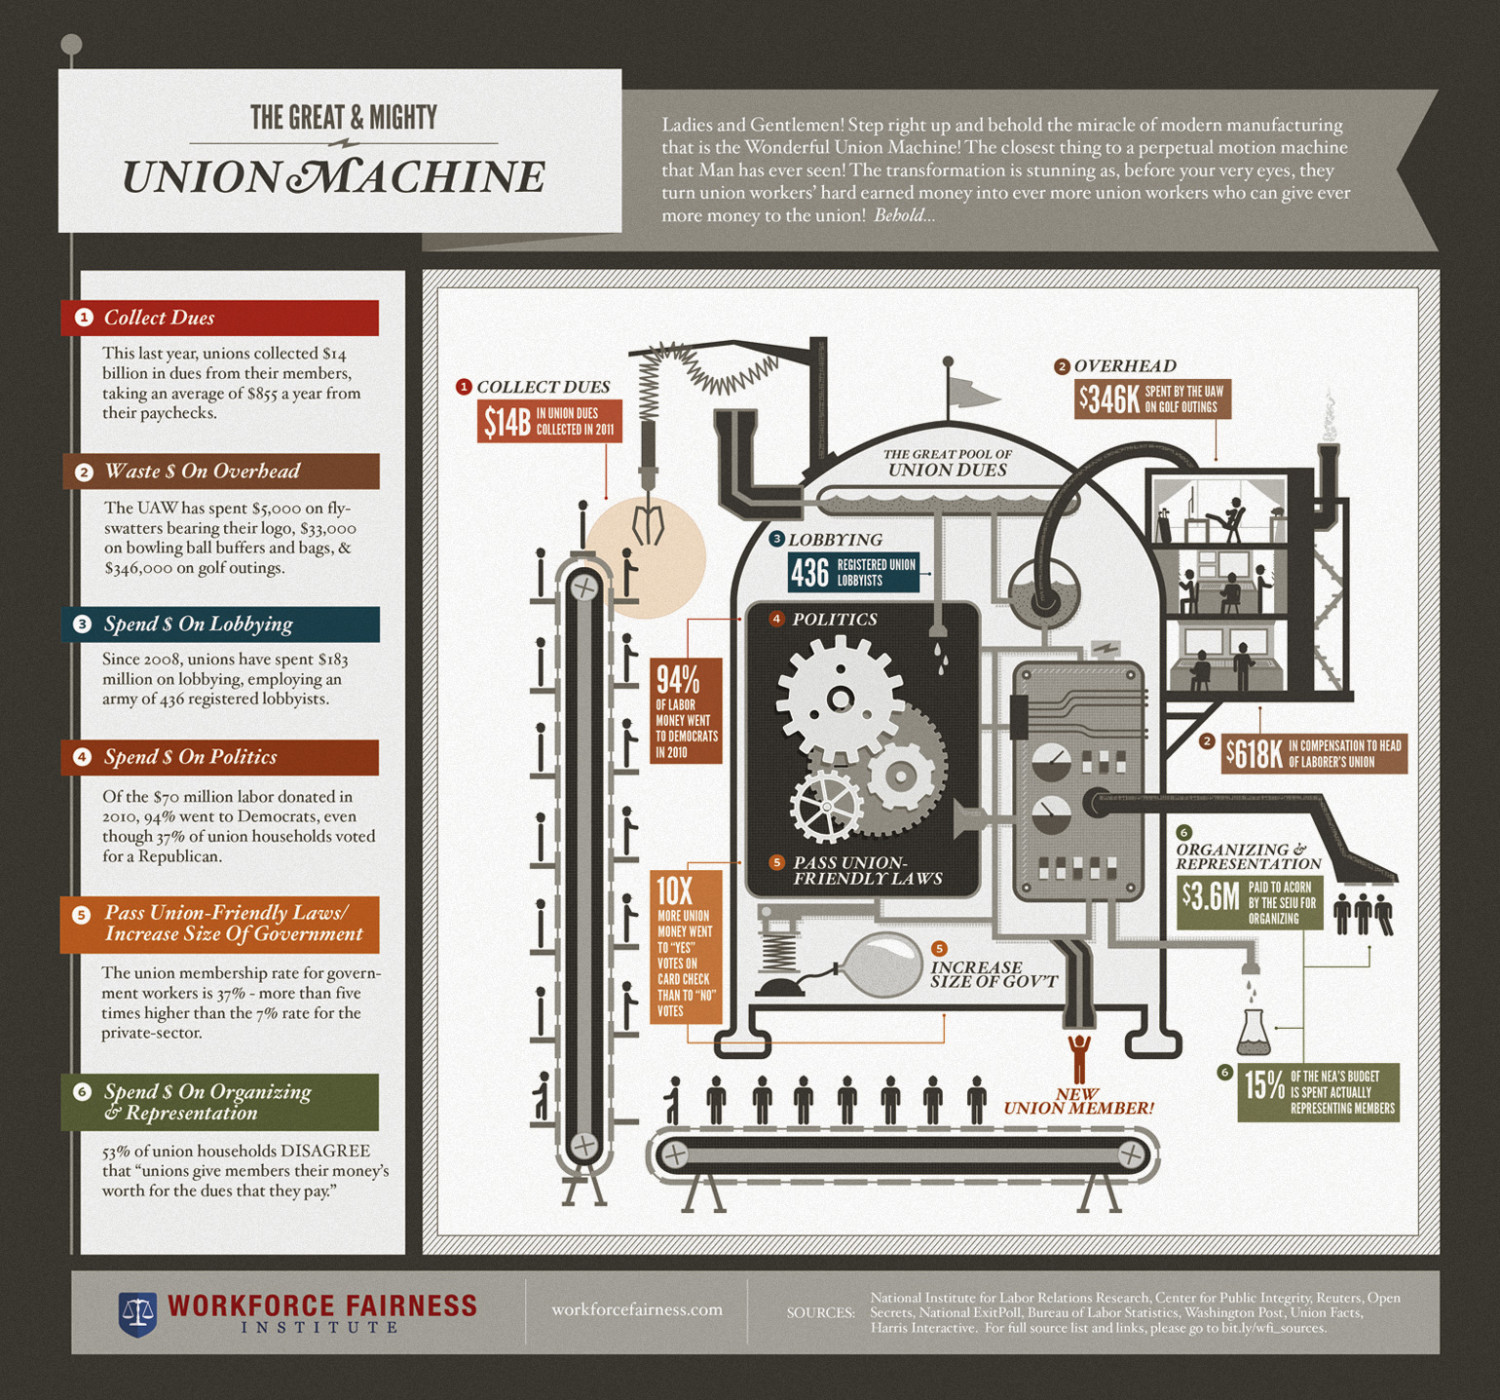 The Great & Mighty Union Machine Infographic